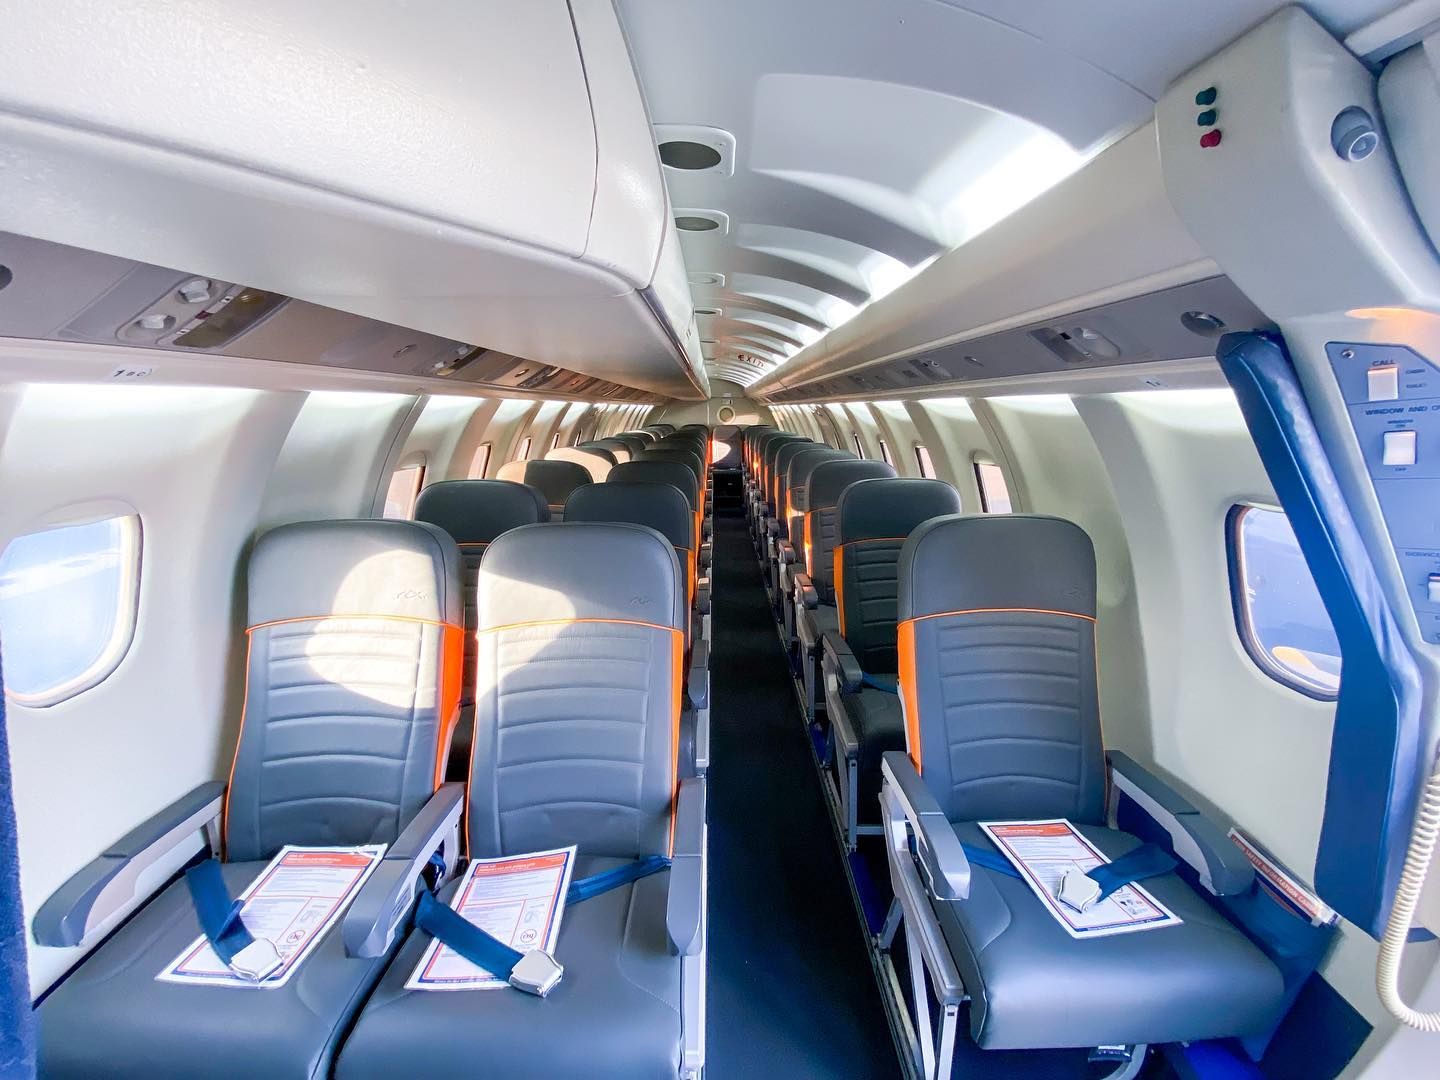 Seat configuration of SAAB planes 340 from Rex Airlines saab airplanes